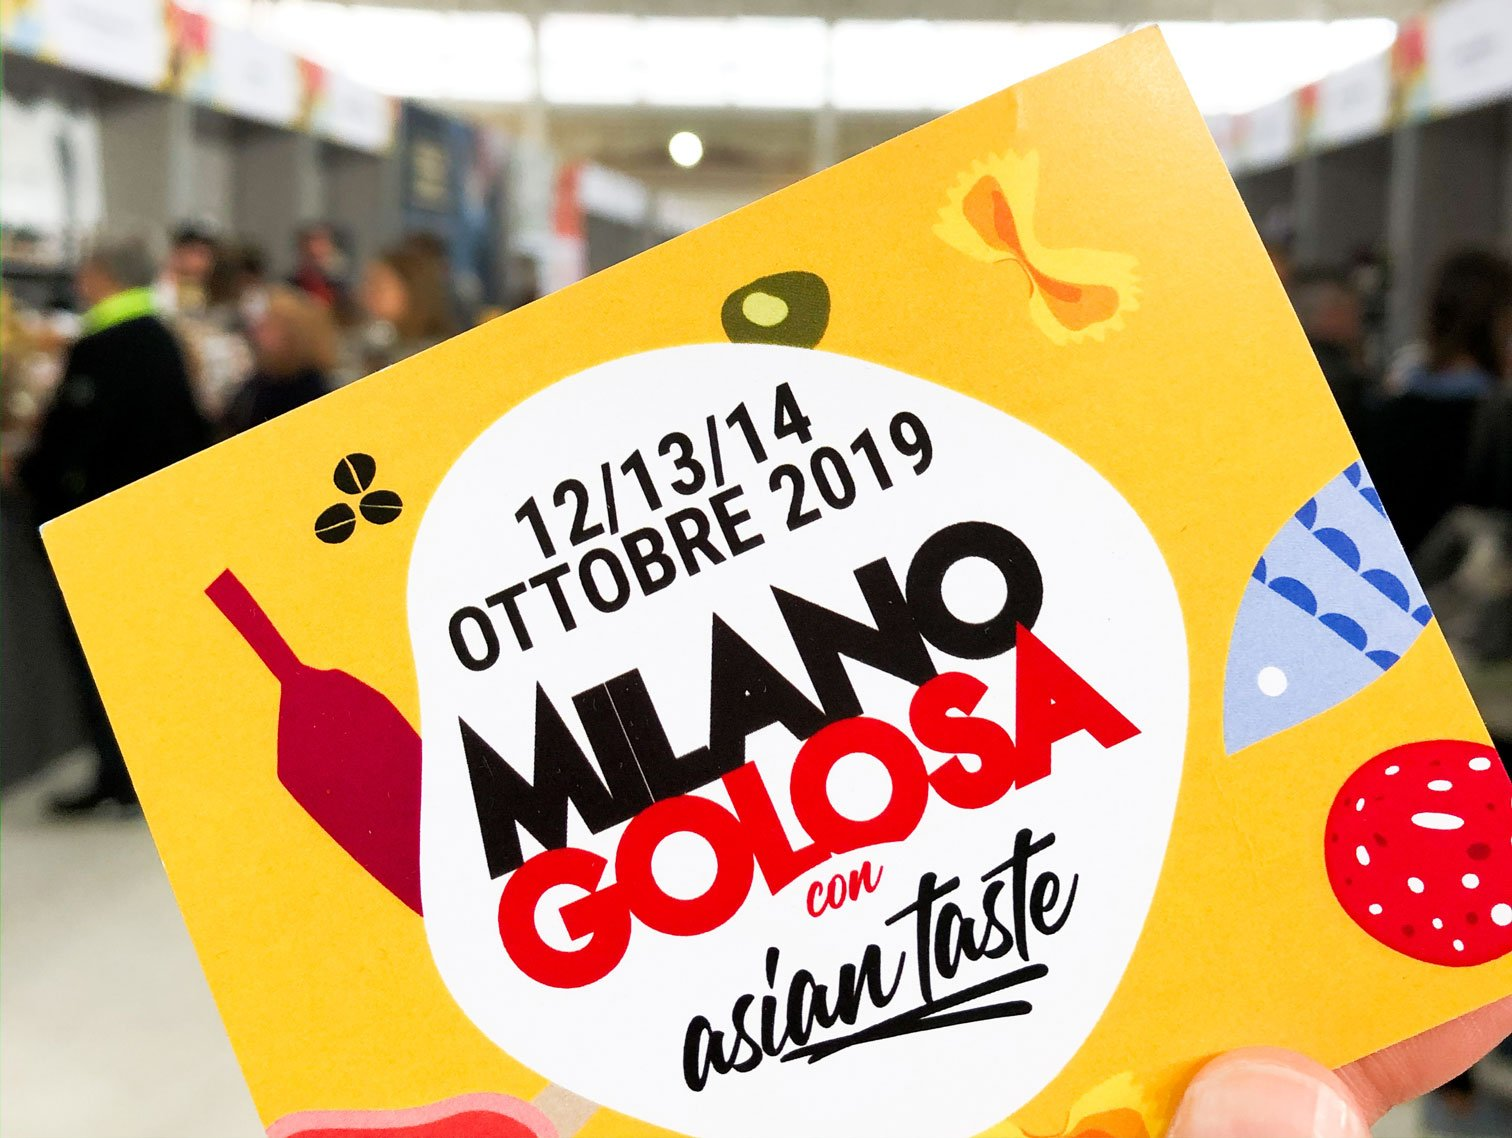 milano-golosa-asian-taste-2019-card-web